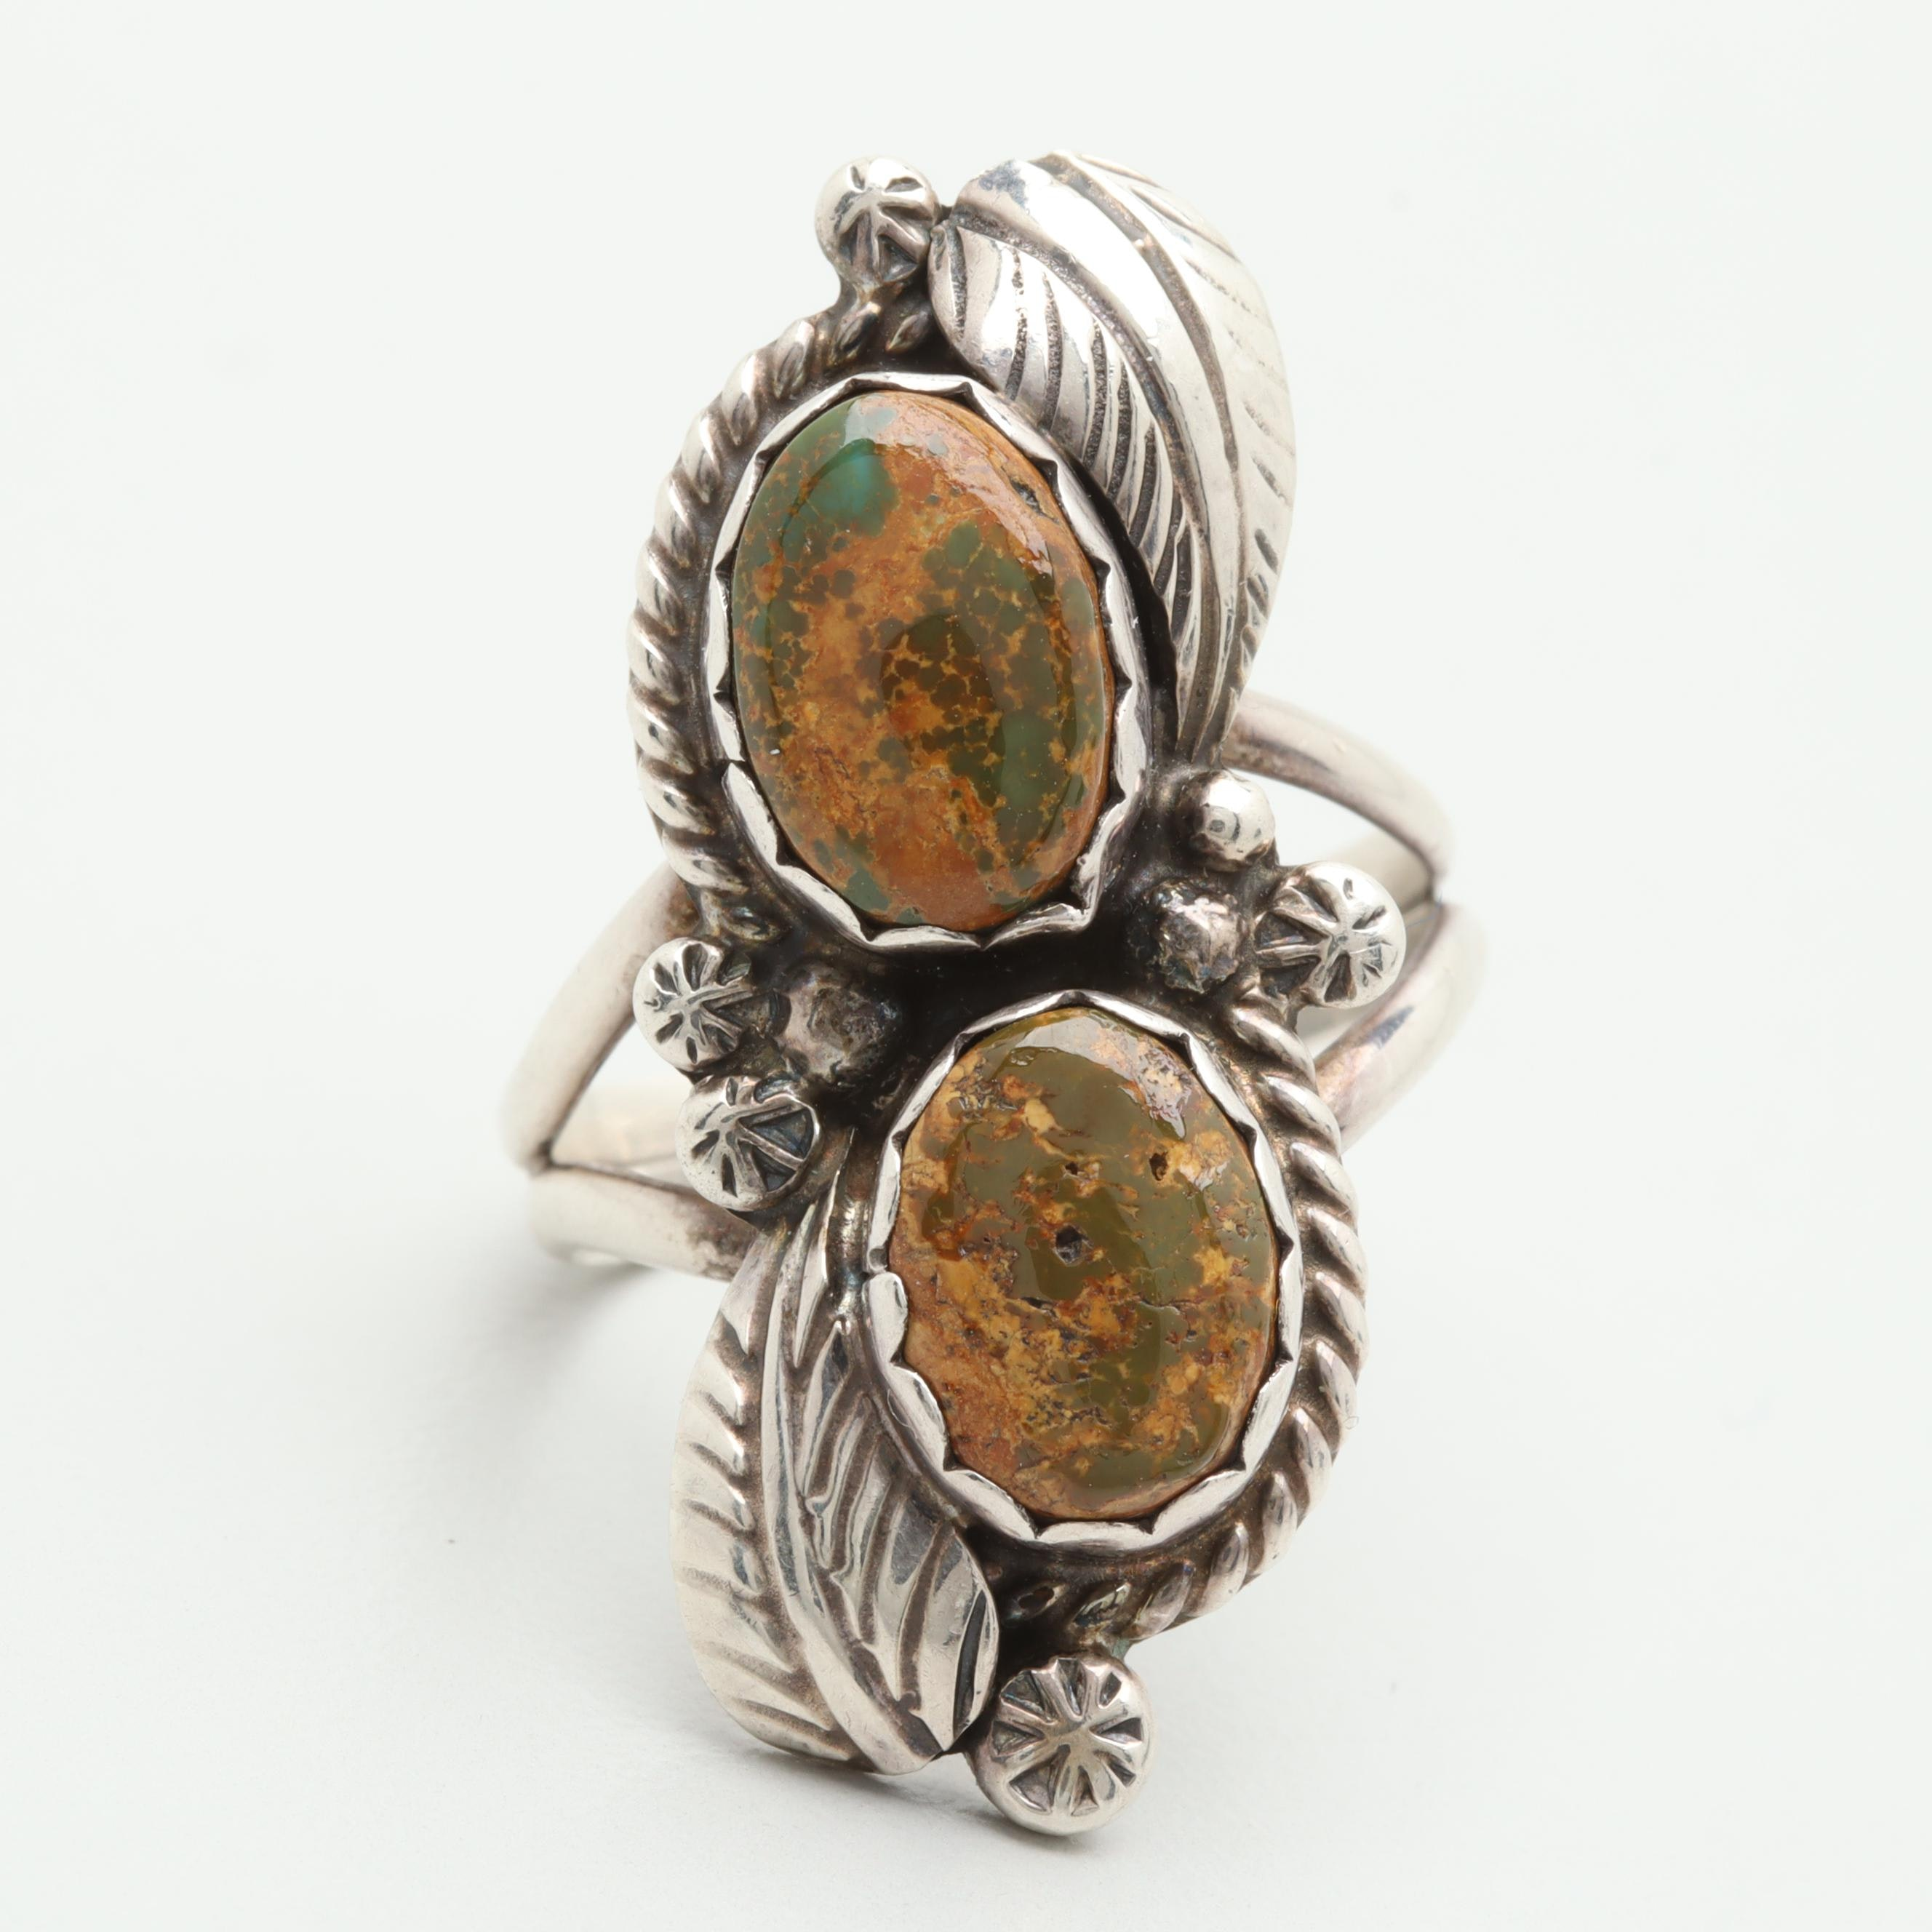 Edith Kee Navajo Diné Sterling Silver Green Turquoise Ring